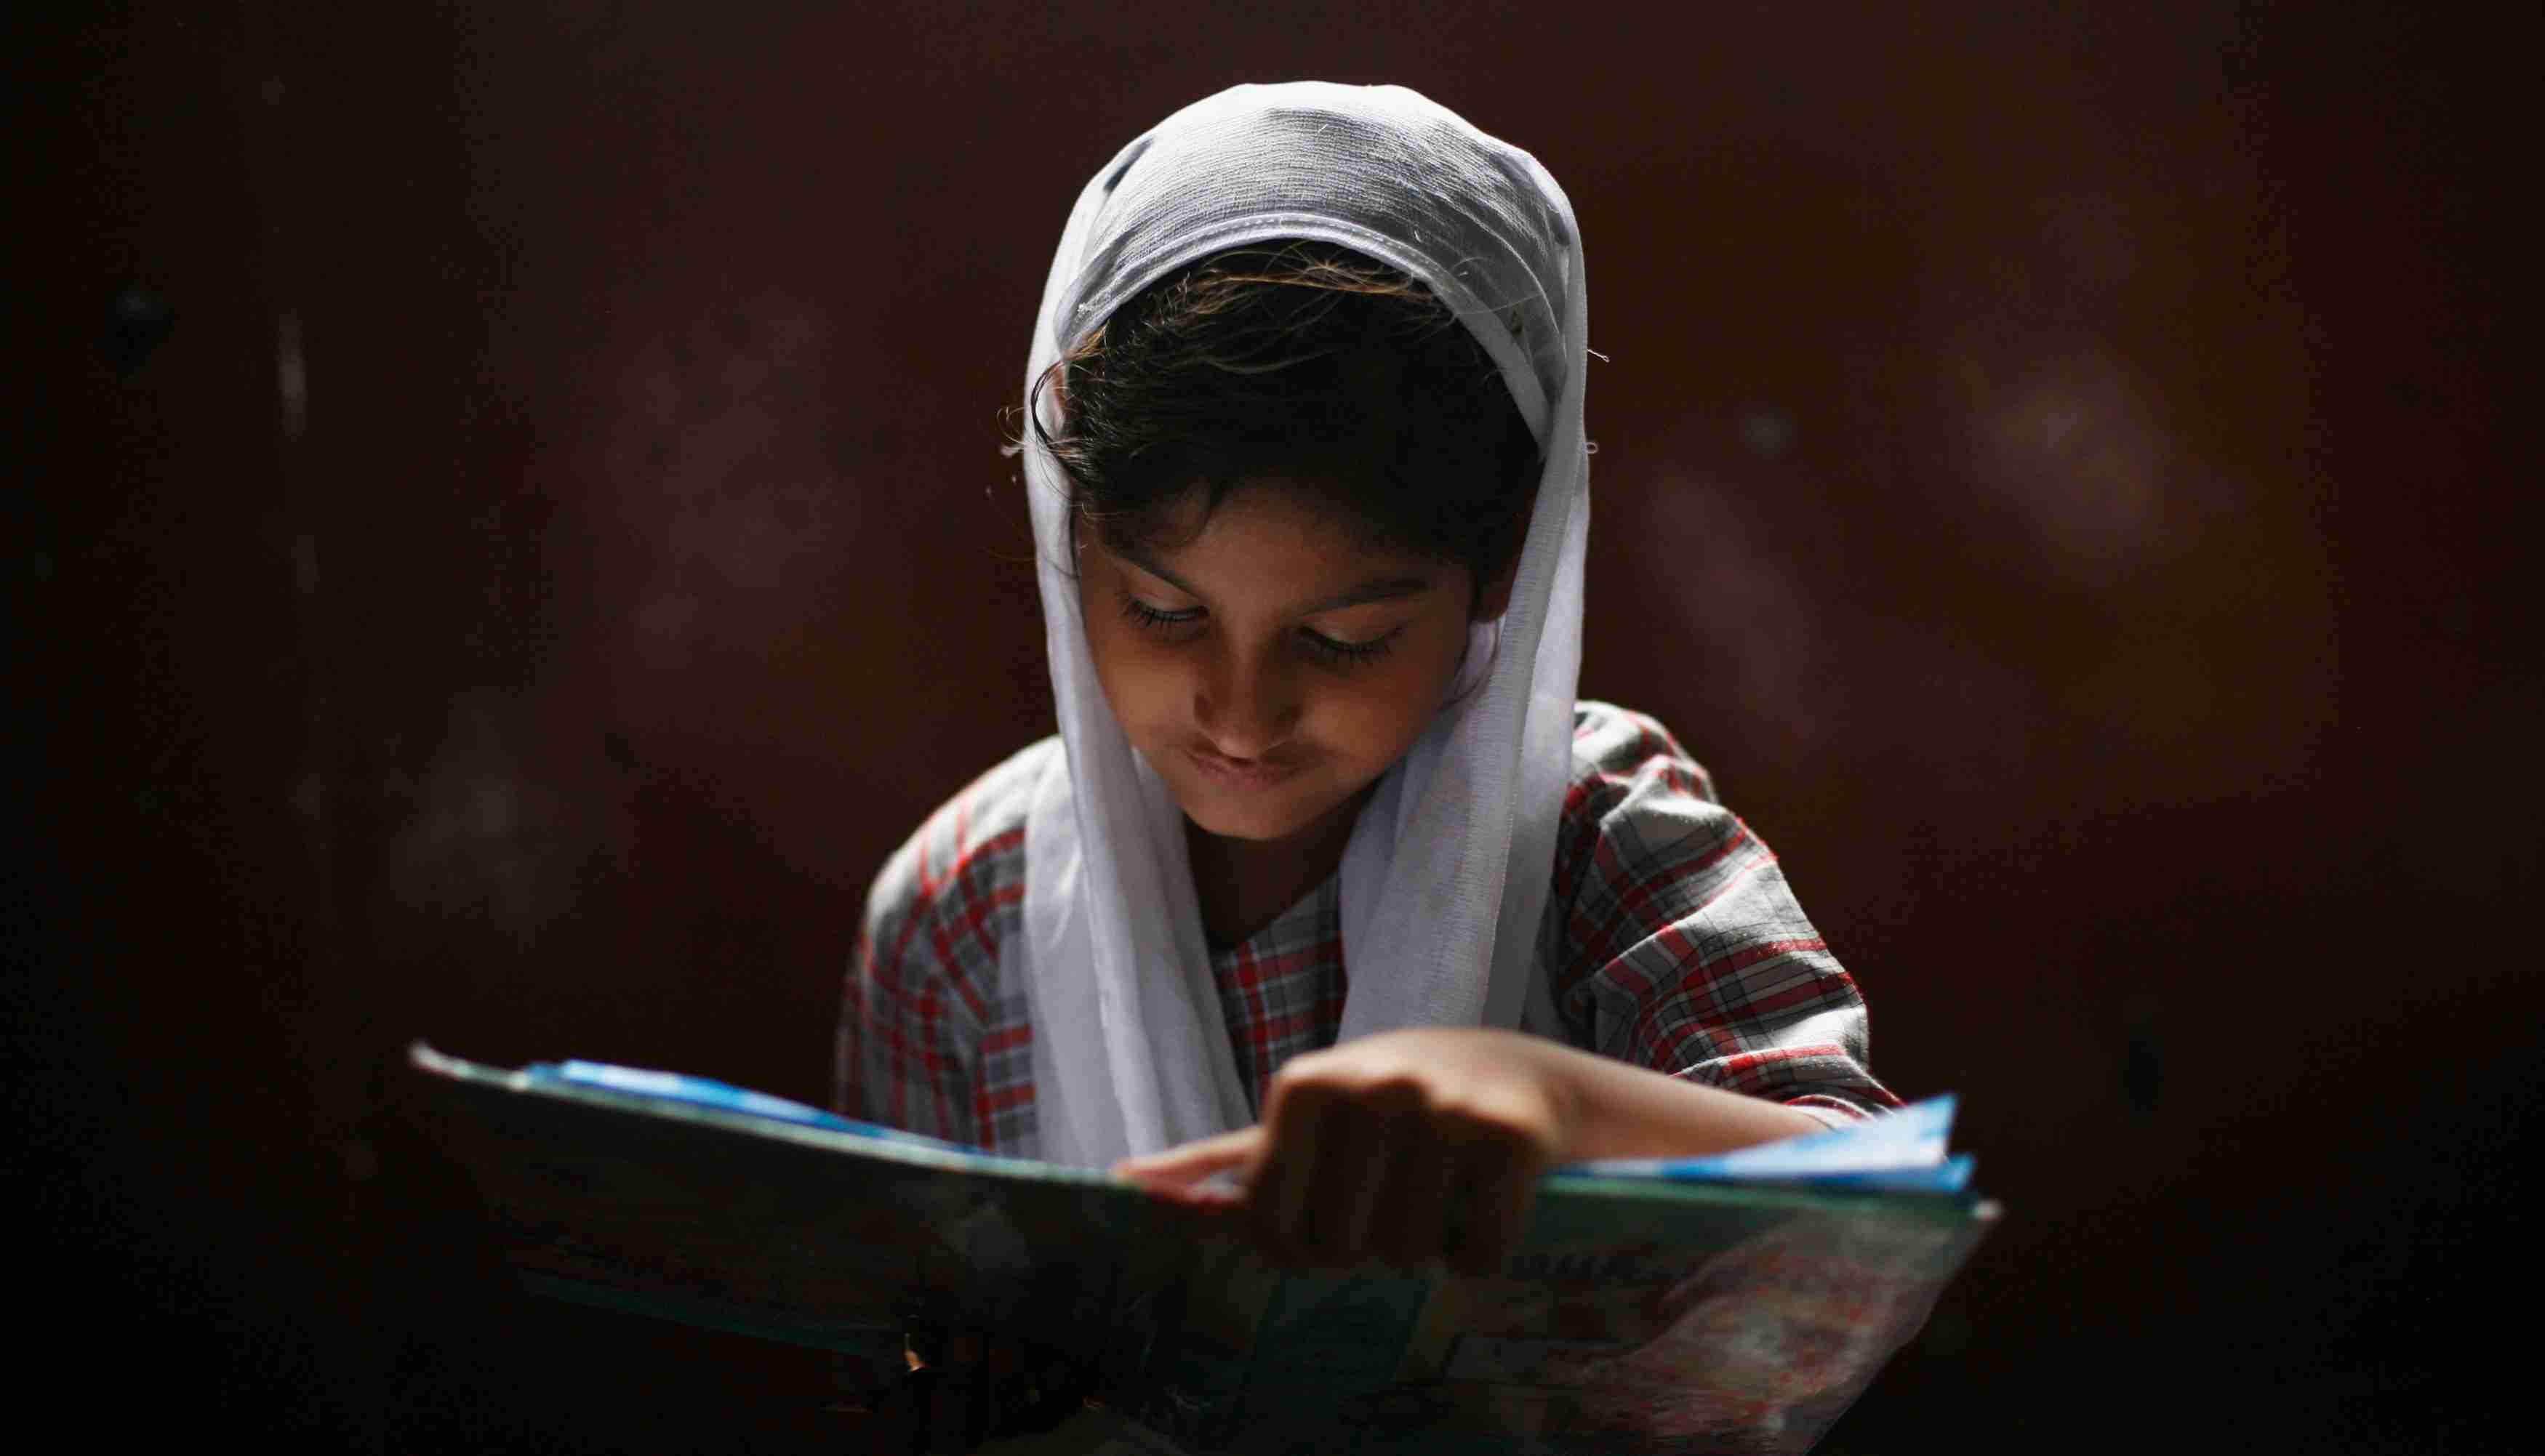 A Muslim girl learns to read the Koran at a madrassa, or religious school, during the holy month of Ramadan in the old quarters of Delhi July 31, 2013. REUTERS/Mansi Thapliyal (INDIA - Tags: RELIGION SOCIETY EDUCATION TPX IMAGES OF THE DAY) - GM1E97V1E3P01